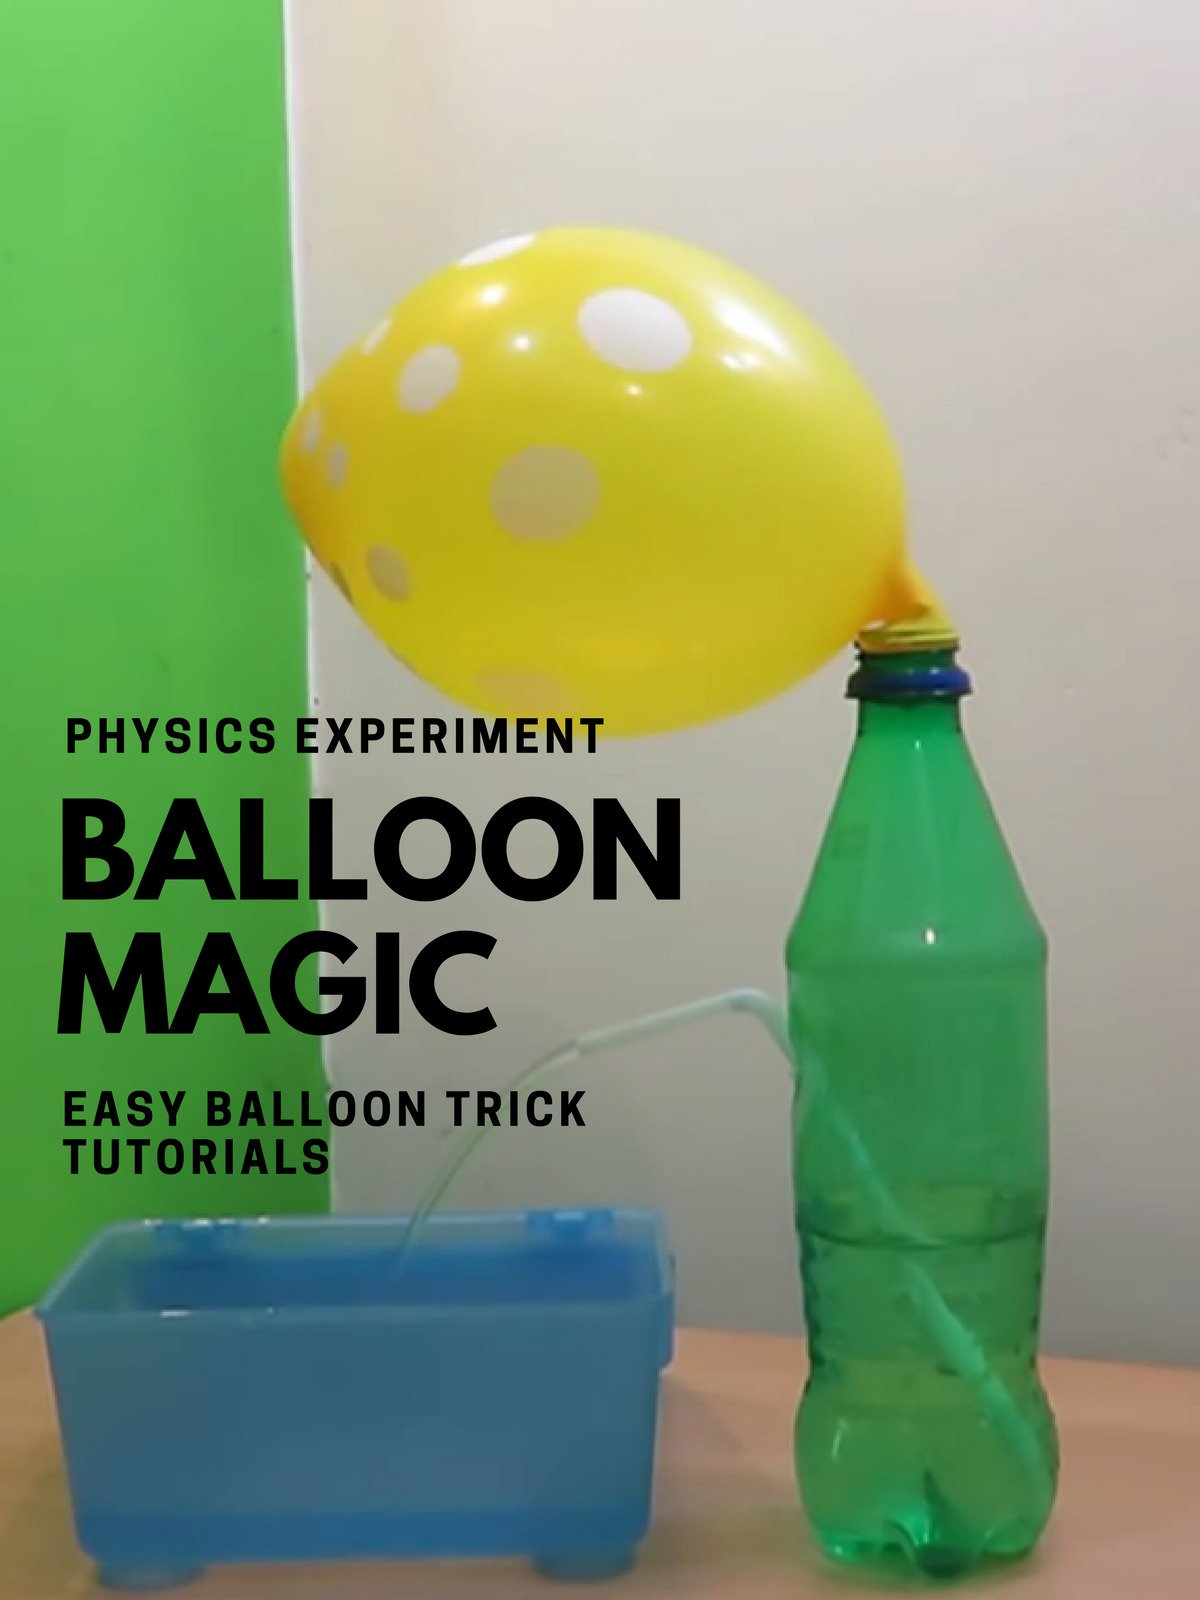 Balloon Magic (Physics Experiment)